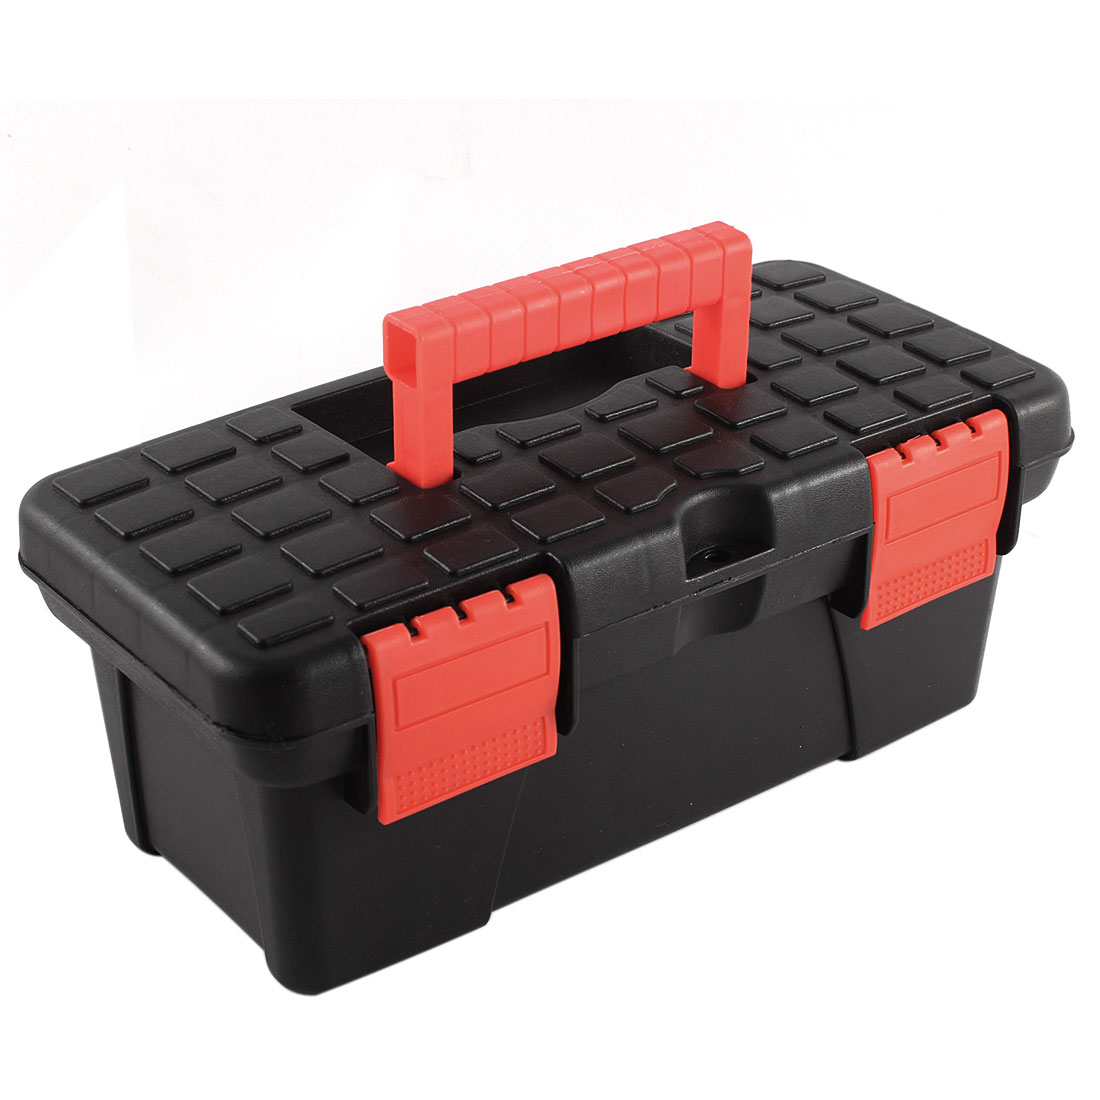 Electrician Engineer Plastic Dual Layers Tools Hardware Storage Box Black Red